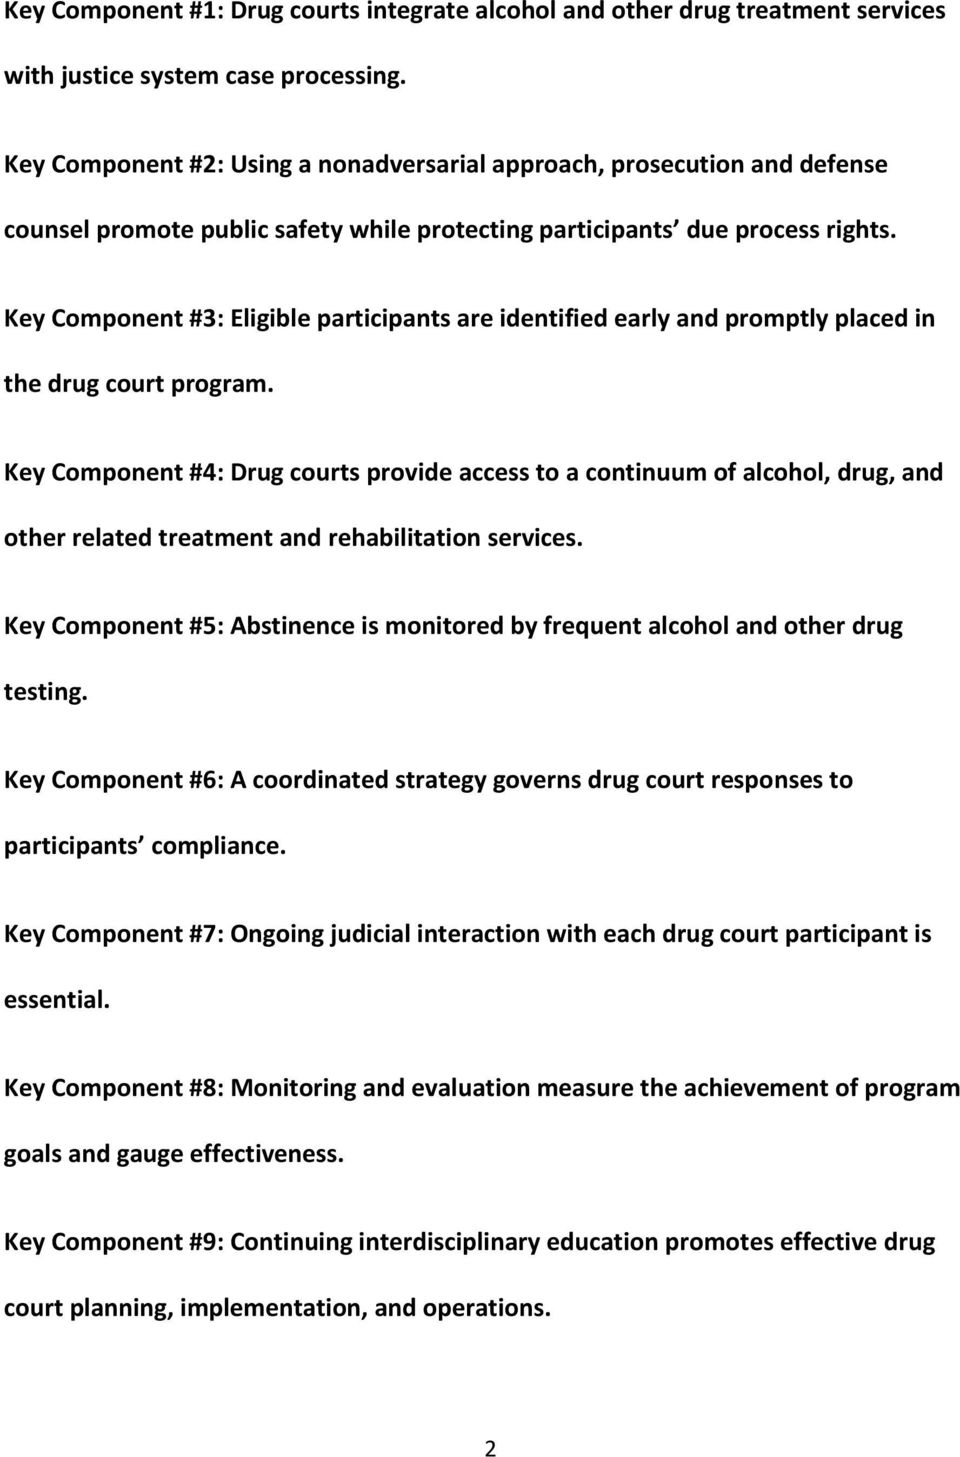 Key Component #3: Eligible participants are identified early and promptly placed in the drug court program.